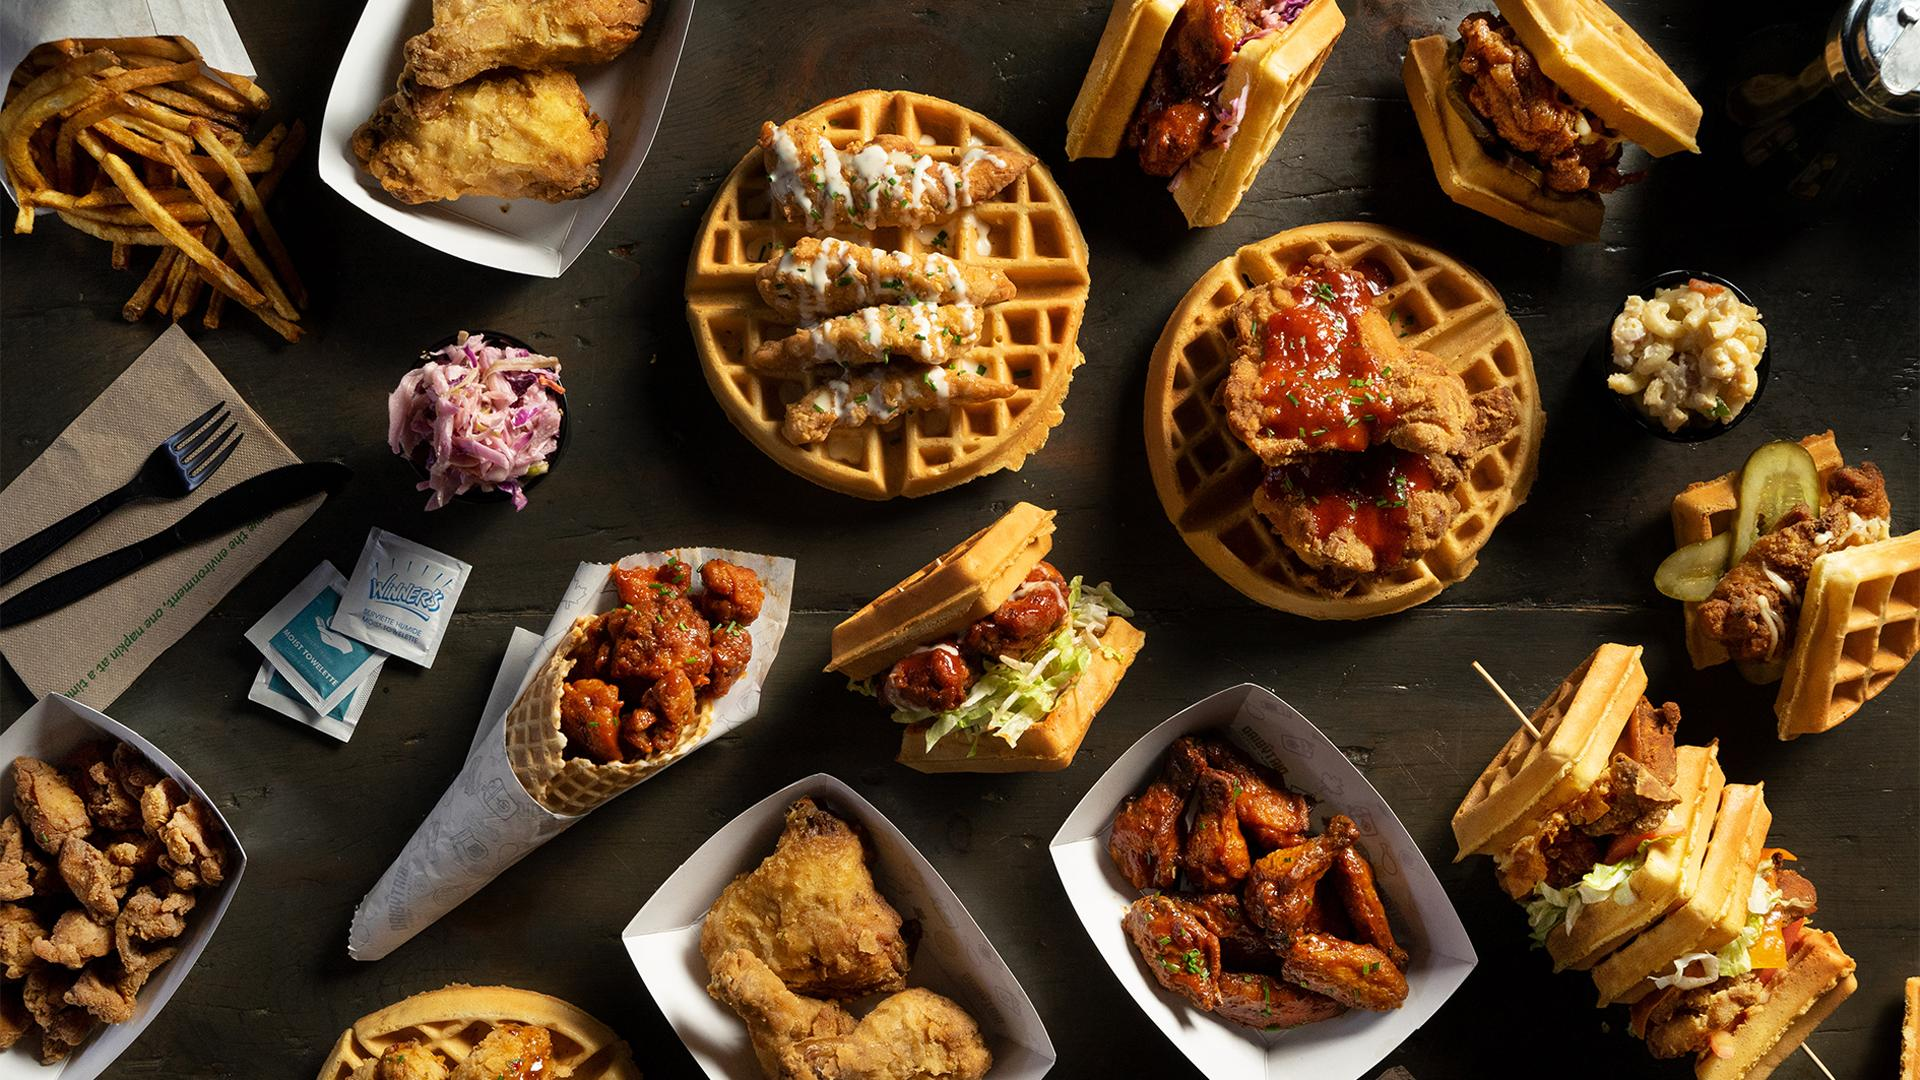 8 Of The Best Southern And Soul Food Restaurants Foodism To